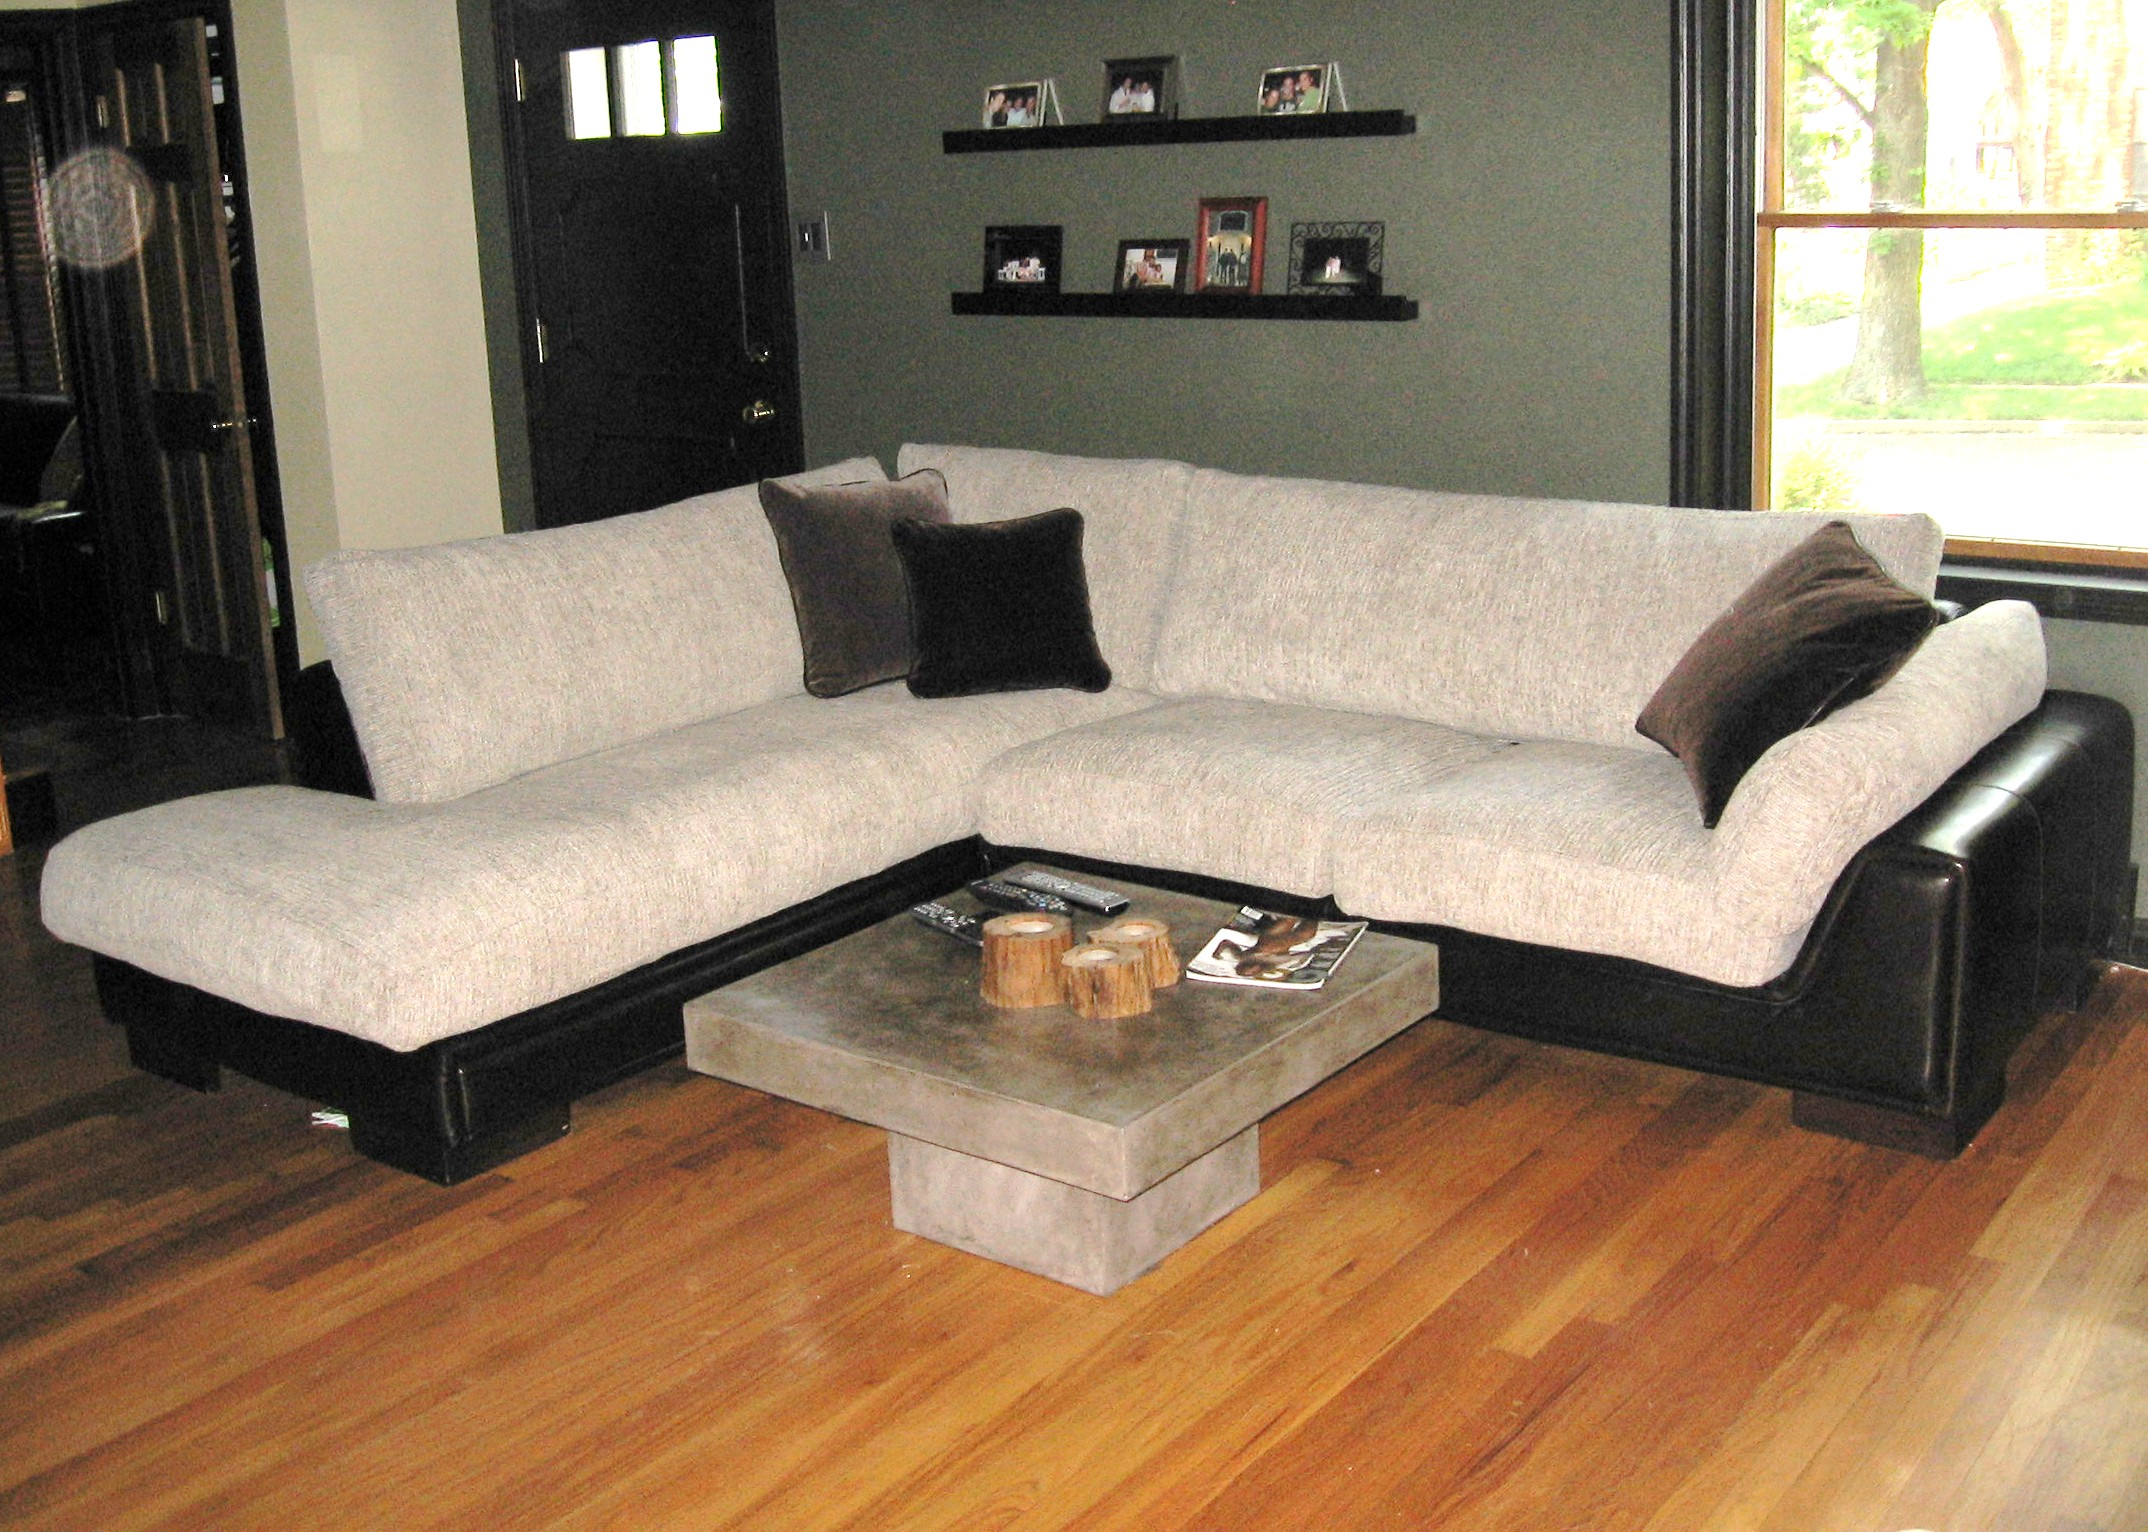 sofa upholstery prices large size re buy couch full cleaning of change reupholstery fabric